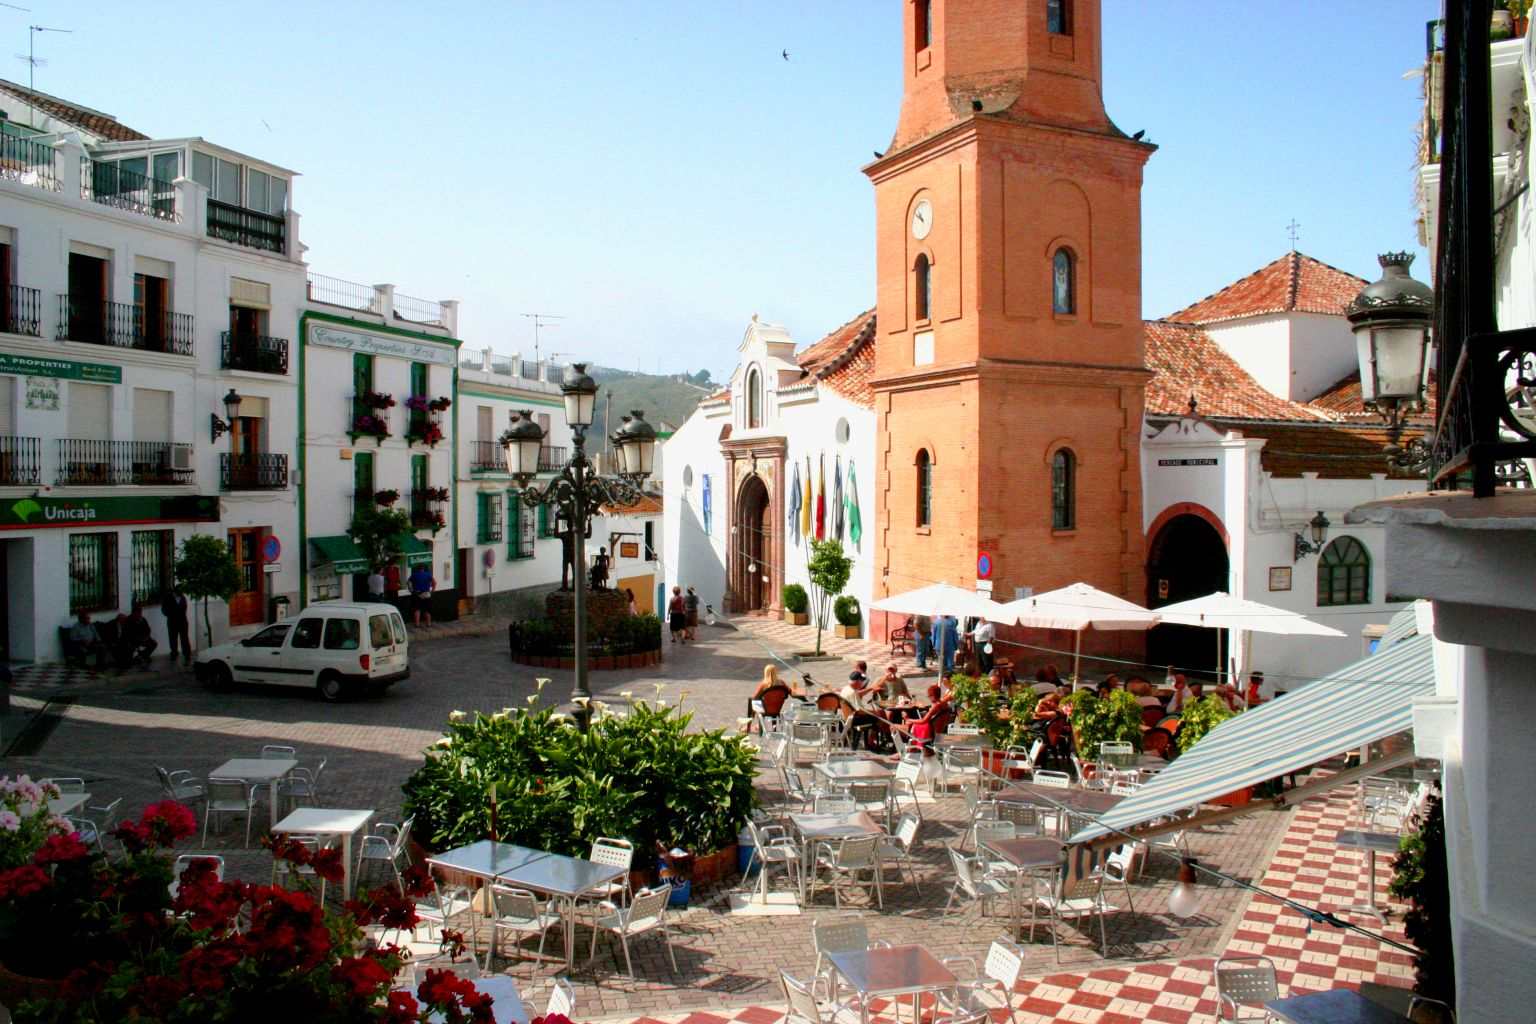 The market-square with the church of Competa, Andalucia, Spain